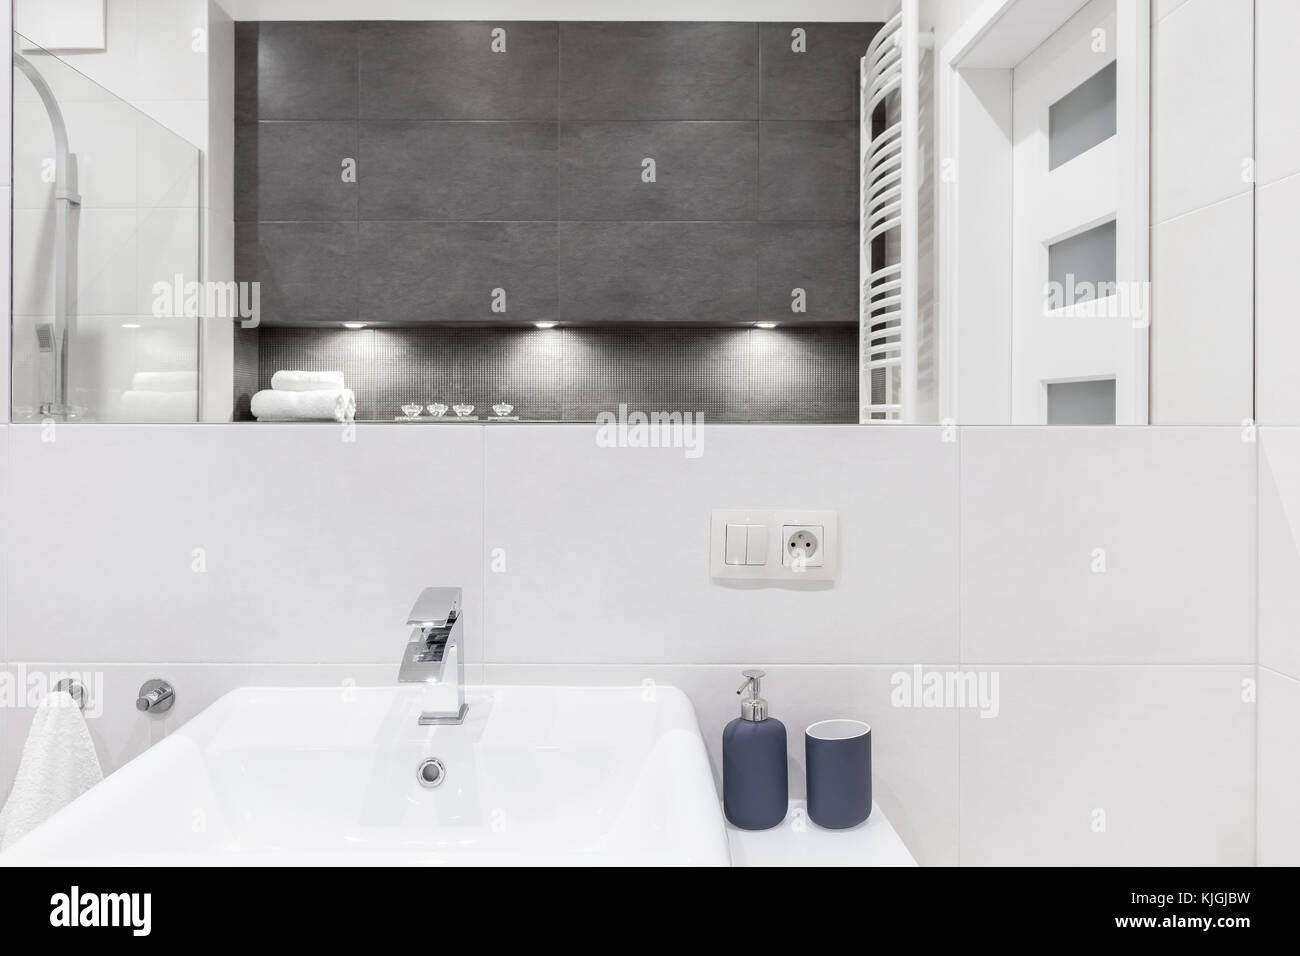 Fine Ceramic Sink In Contemporary White And Gray Tiled Bathroom Download Free Architecture Designs Jebrpmadebymaigaardcom